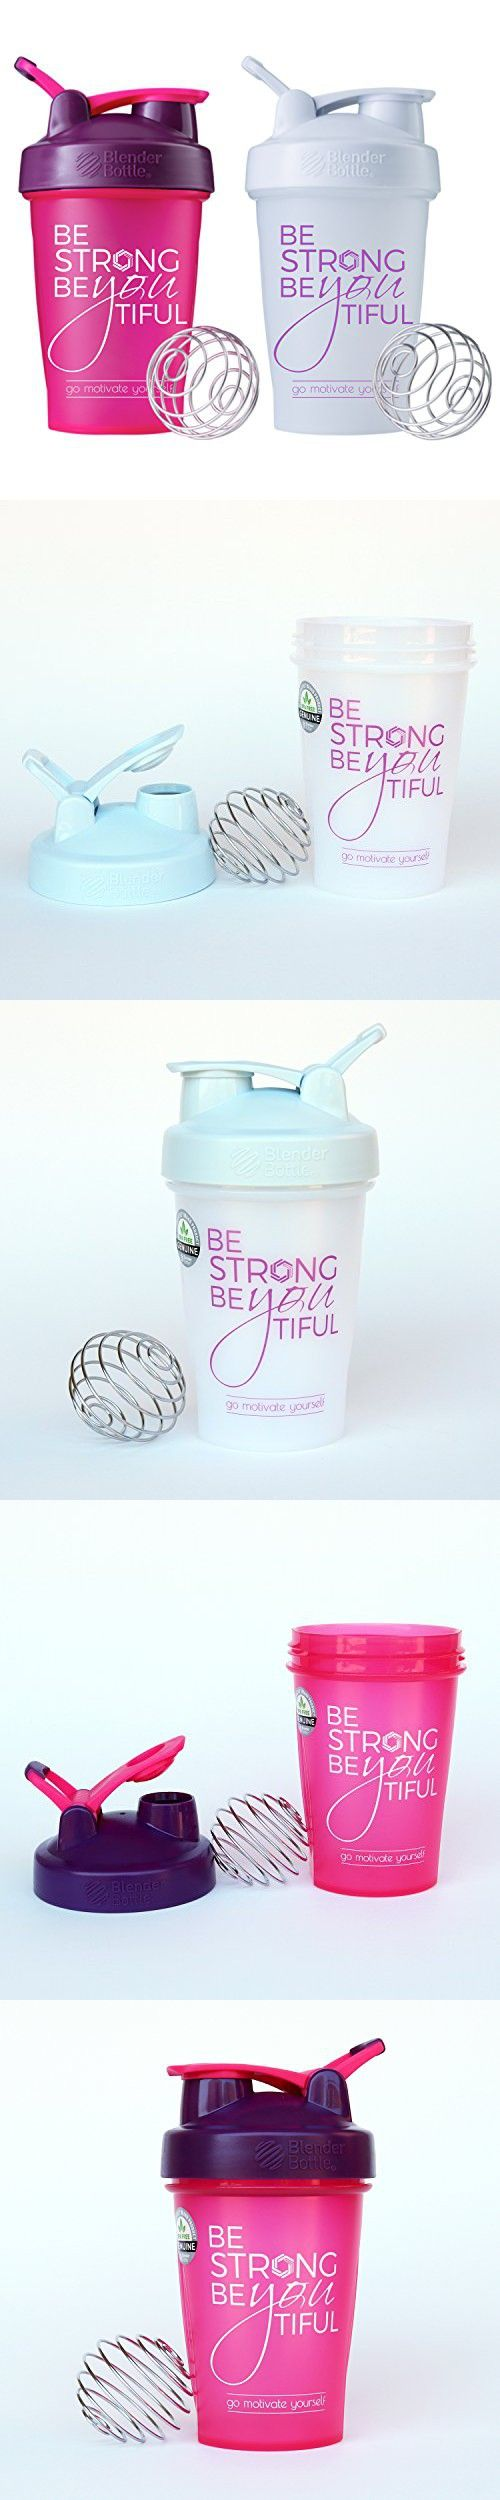 Be Strong BeYOUtiful Blender Bottle, 2 - 20oz Classic Protein Shaker Cup (Pink/Plum and White Combo - 20oz)